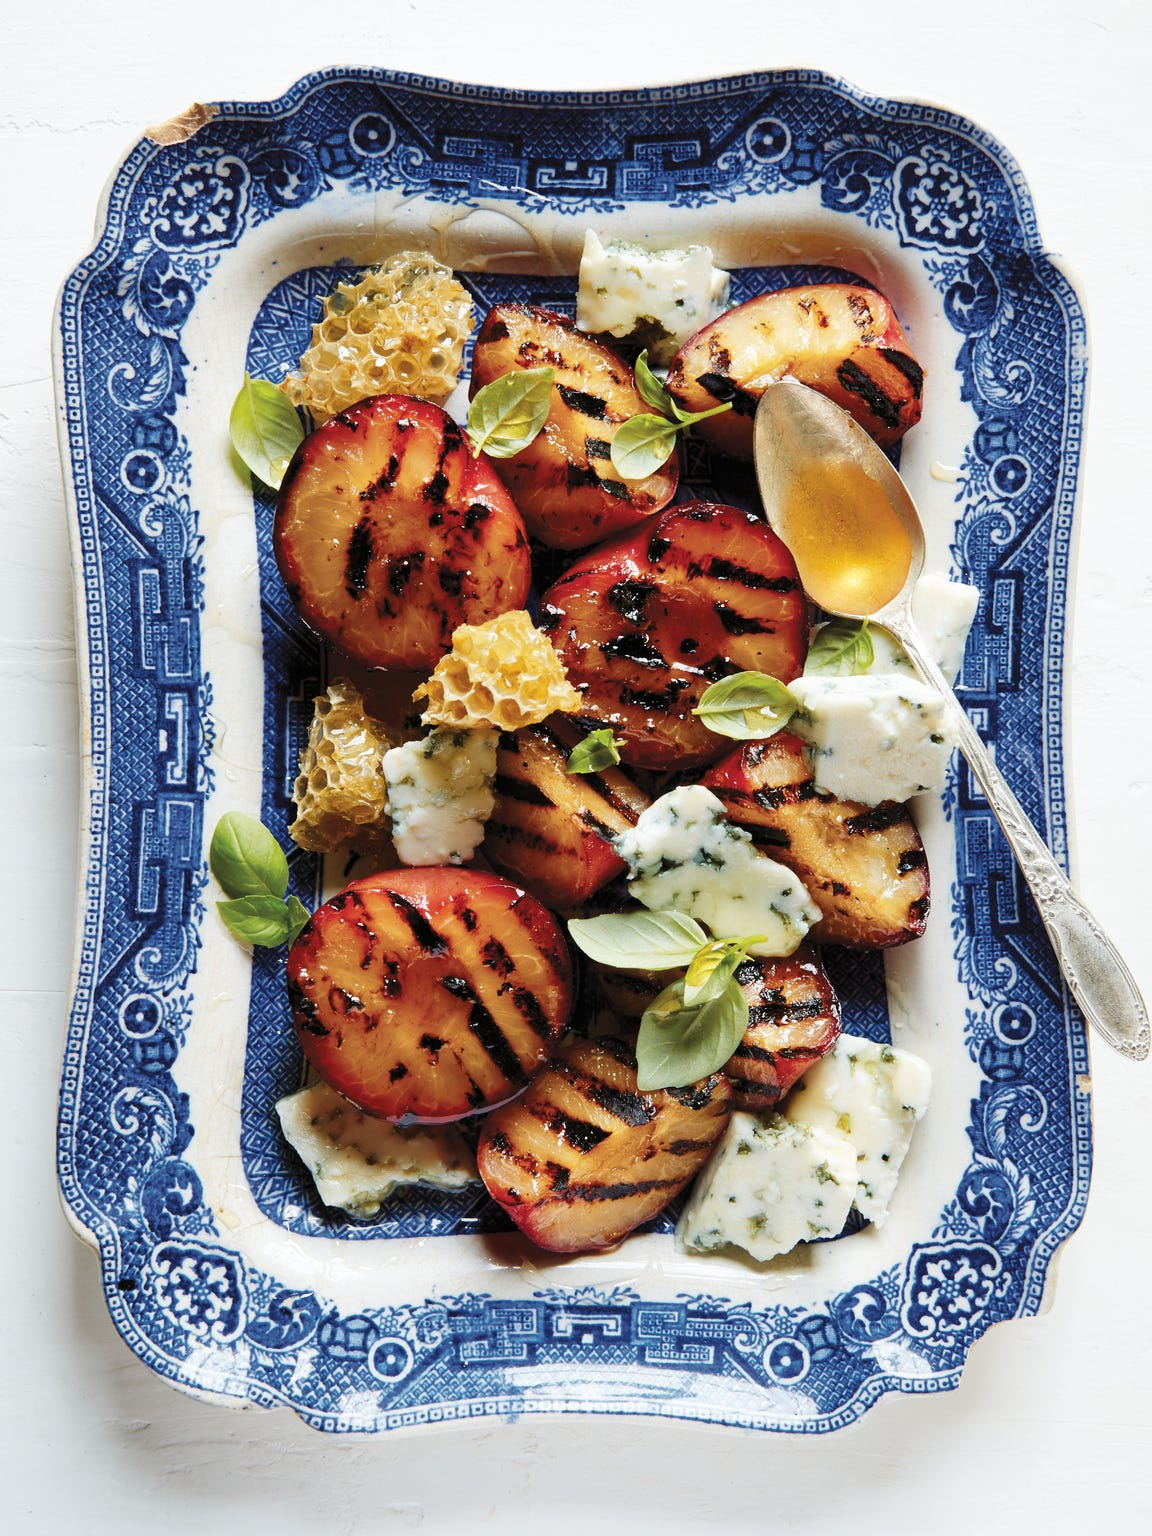 Grilled Stone Fruit, Blue Cheese & Honey Serves 4  When you can't decide between a dessert and a cheese course, make this dish. It's a little savory, a little sweet, and perfectly balanced — and just the thing when the grill's been fired up all day but you're not quite ready to let those nice, hot coals go. If blue cheese is not your flavor, fresh ricotta would be equally lovely here.  Ingredients 4 stone fruits such as apricots, peaches or plums, halved and pitted Olive oil 1 teaspoon Maldon salt 1 small wedge (about ¼ pound) best-quality blue cheese 1/4 cup best-quality honey Small basil leaves  Directions Prepare the grill (see text below for tips). Brush the fruit halves with olive oil and sprinkle with salt. Put them flesh-side down on a hot grill and cook just until you get some good grill marks on the fruit, about 4 minutes. Turn the fruit and grill for another 2 minutes. Transfer the fruit to a platter, garnish with a bit of blue cheese, a drizzle of honey, and a sprinkling of basil and serve.